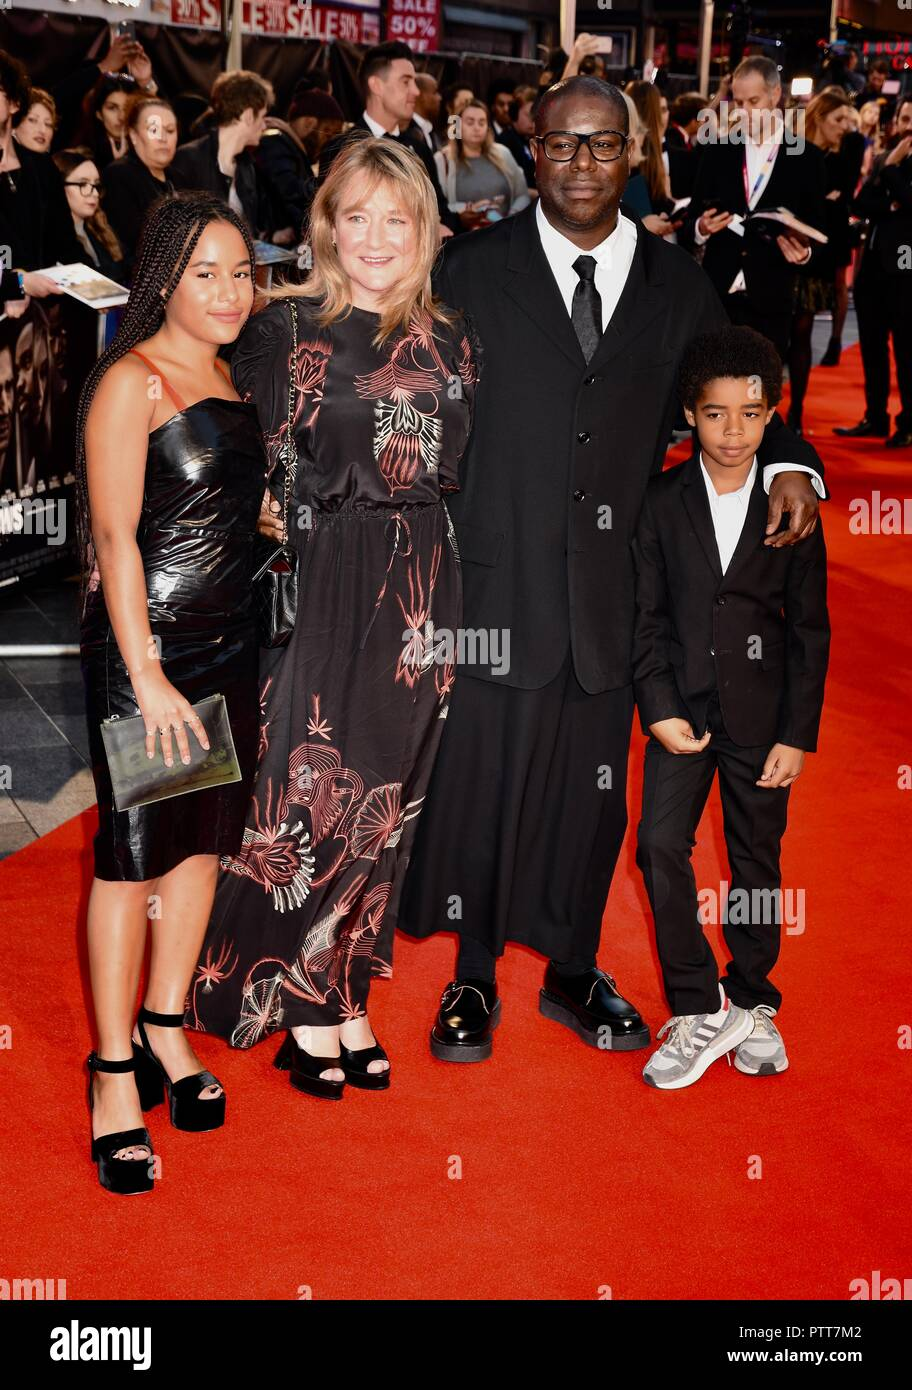 London, UK. 10th October, 2018. Steve McQueen and family,'Widows' BFI London Film Festival Opening Gala,Leicester Square,London.UK Credit: michael melia/Alamy Live News - Stock Image